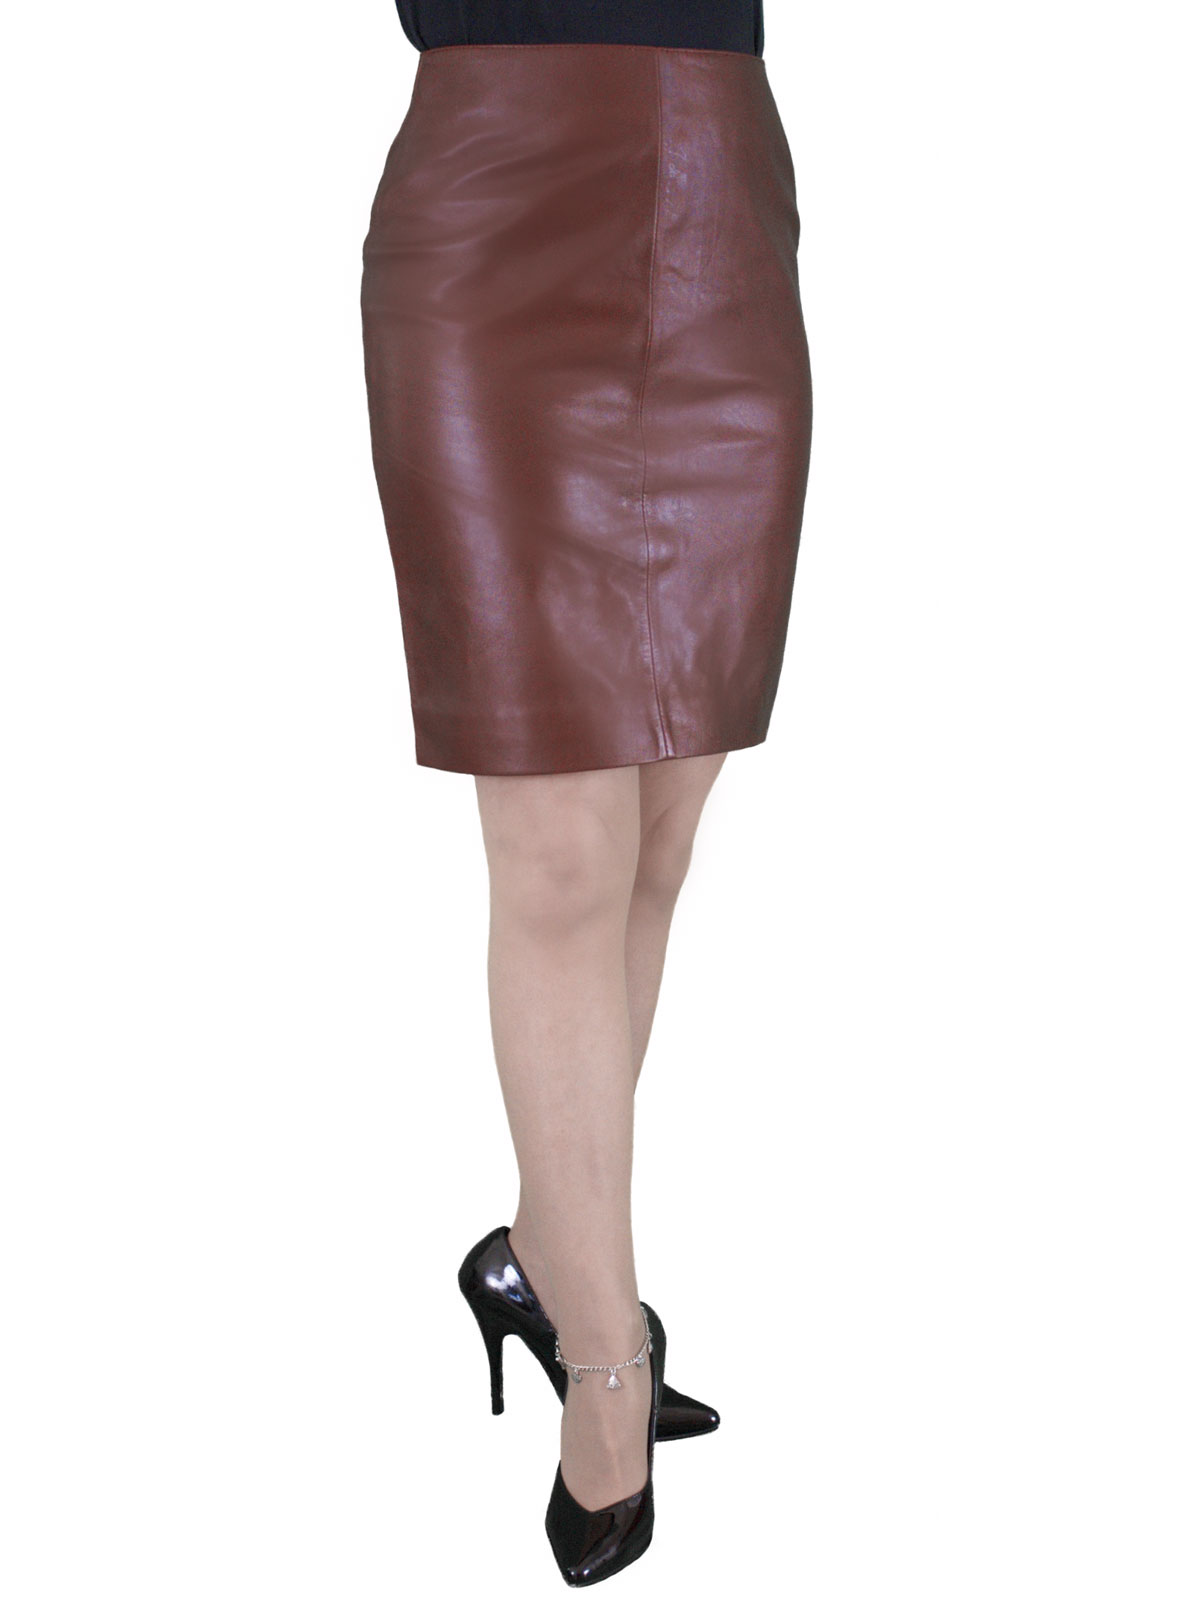 soft leather pencil skirt rear zip 19in length